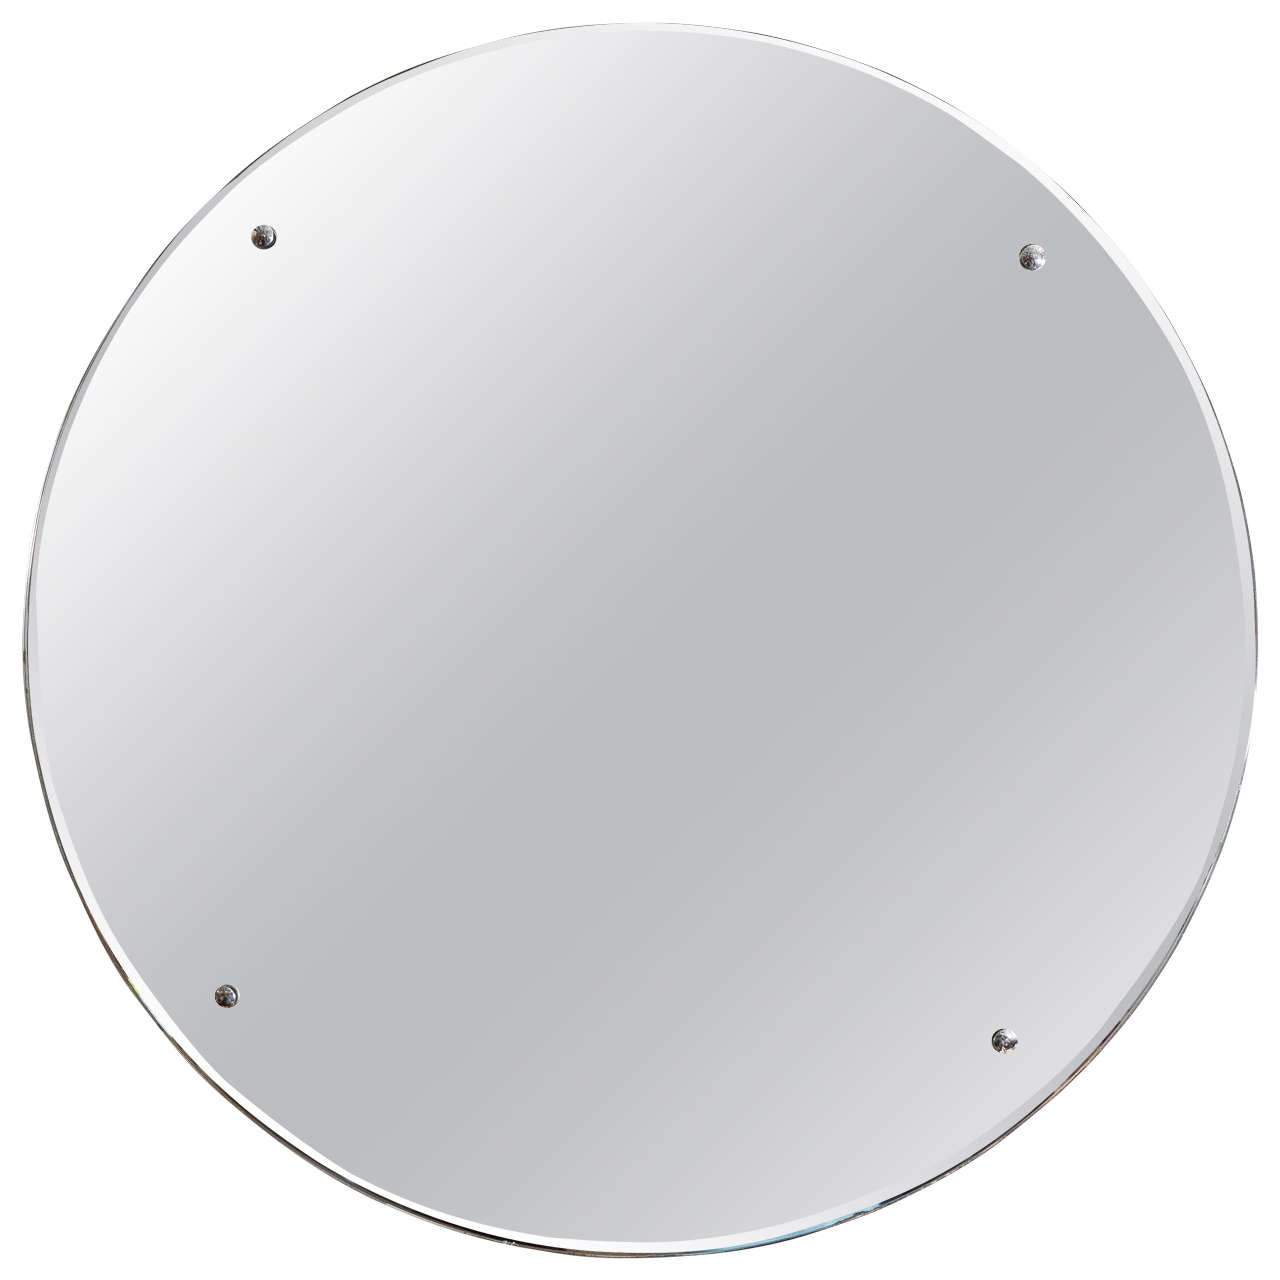 Art deco mirror zolt round frameless art deco mirror with chrome buttons at 1stdibs amipublicfo Image collections